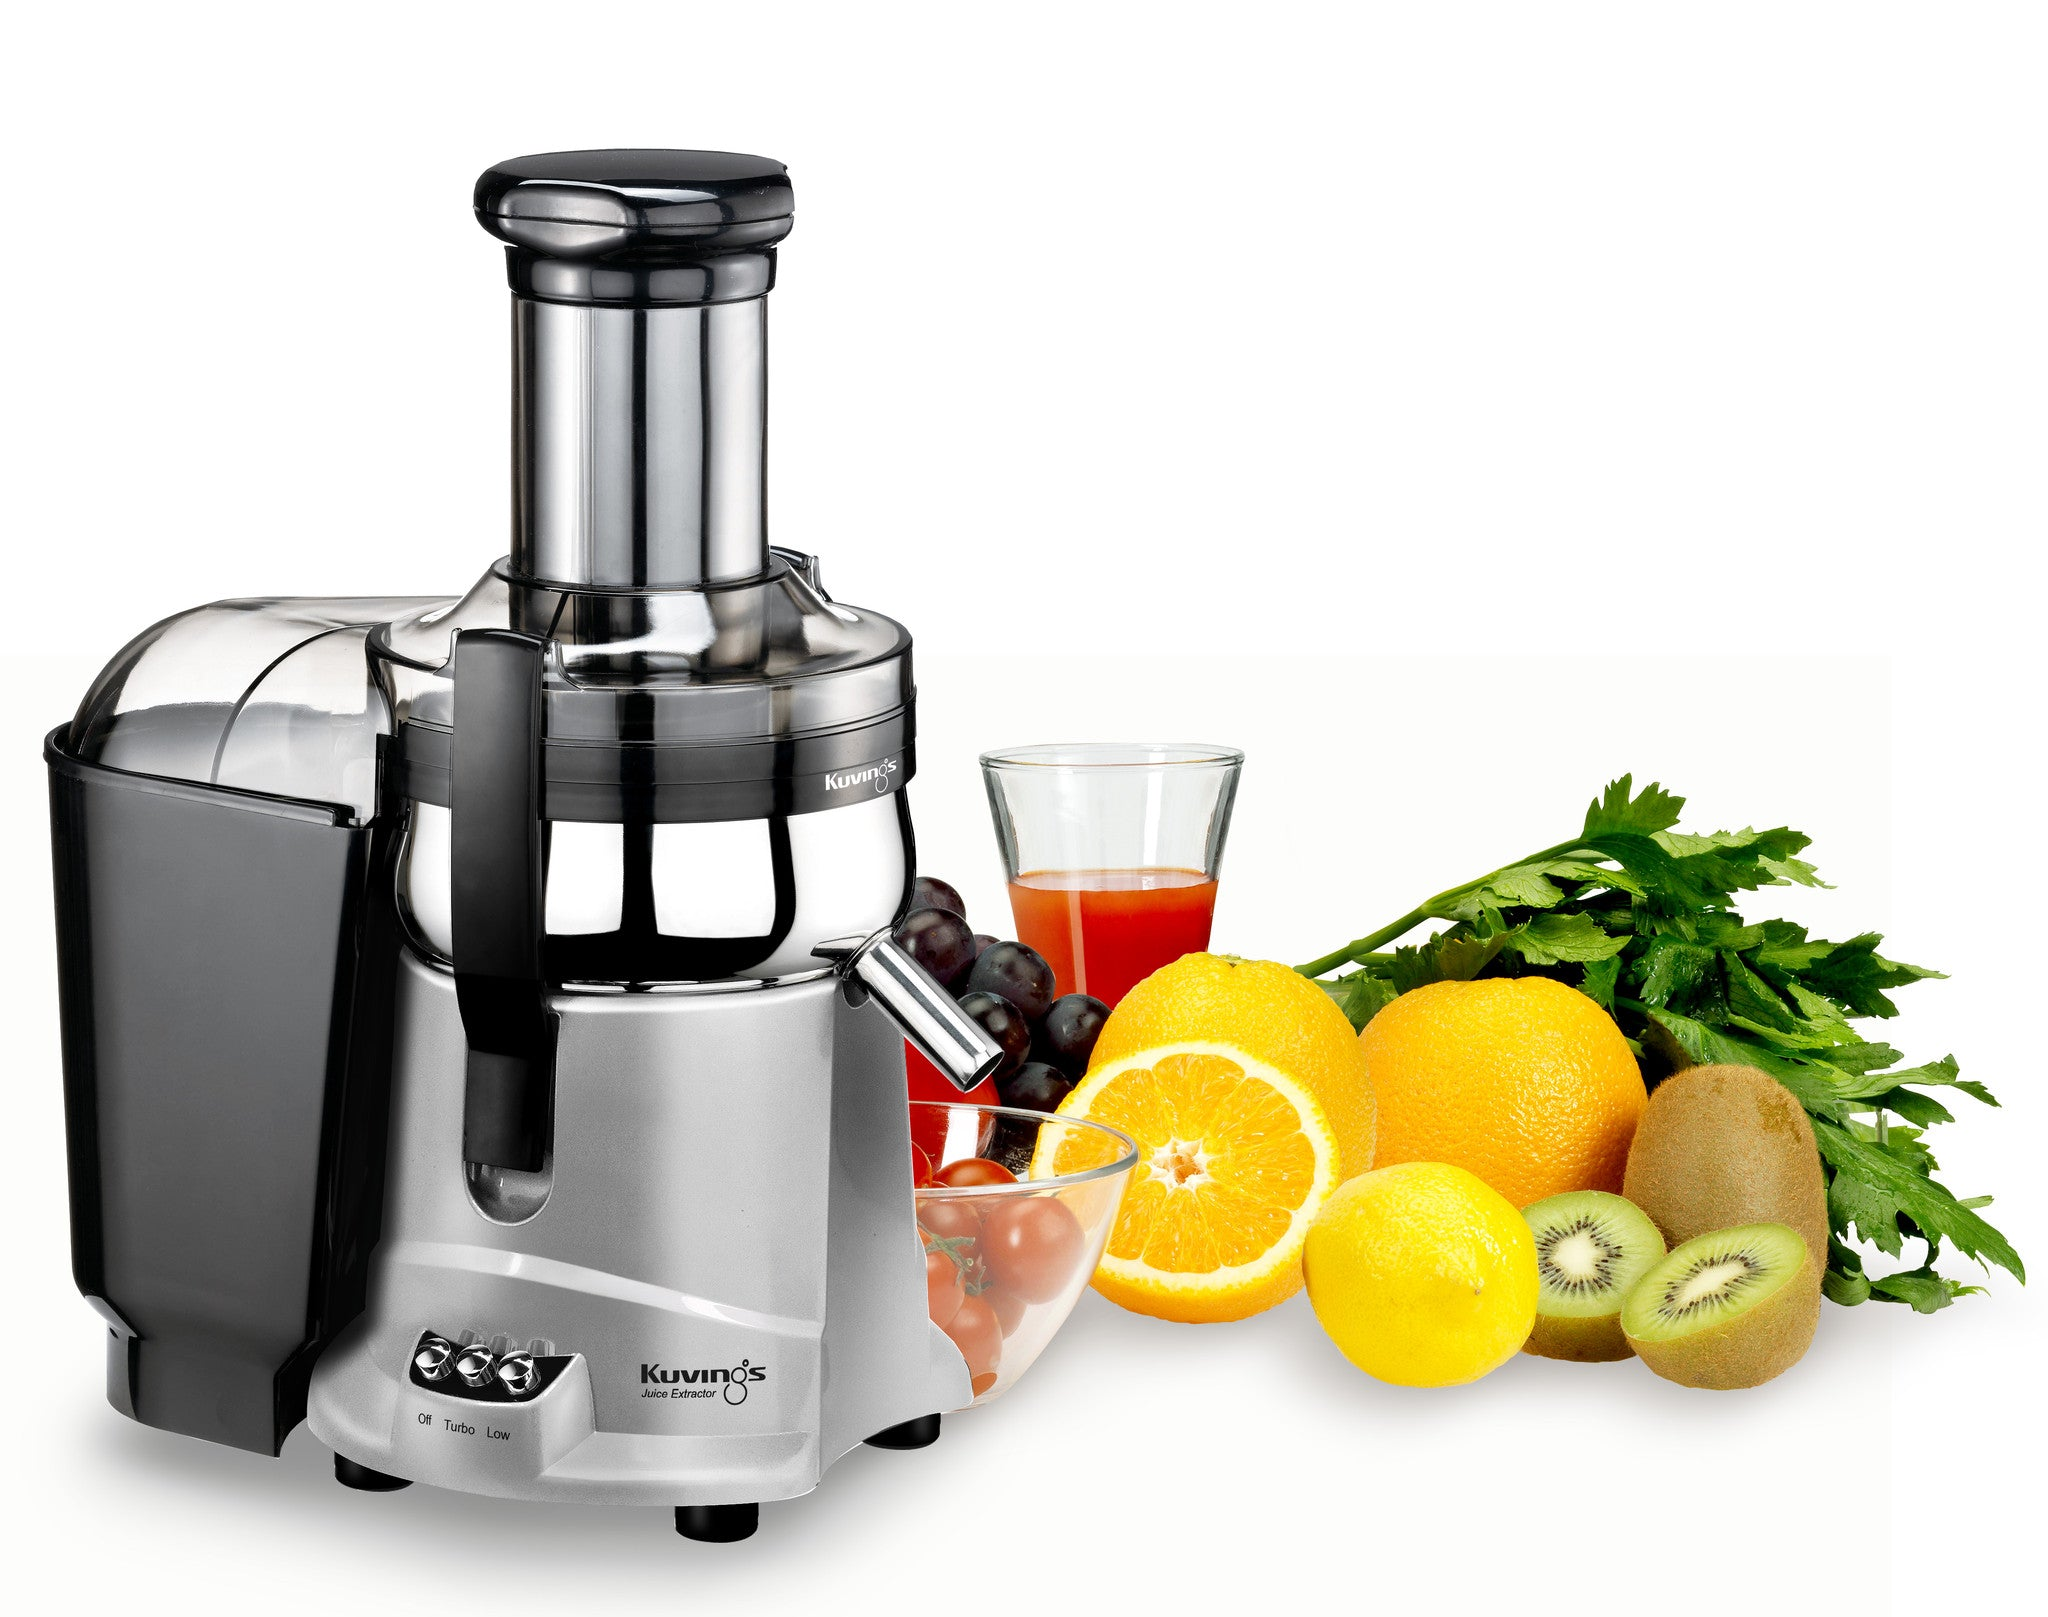 Healthy Living Slow Juicer Natural Juice Extractor : Kuvings NJ-9500U Centrifugal Juice Extractor by Kuvings Juicers Best